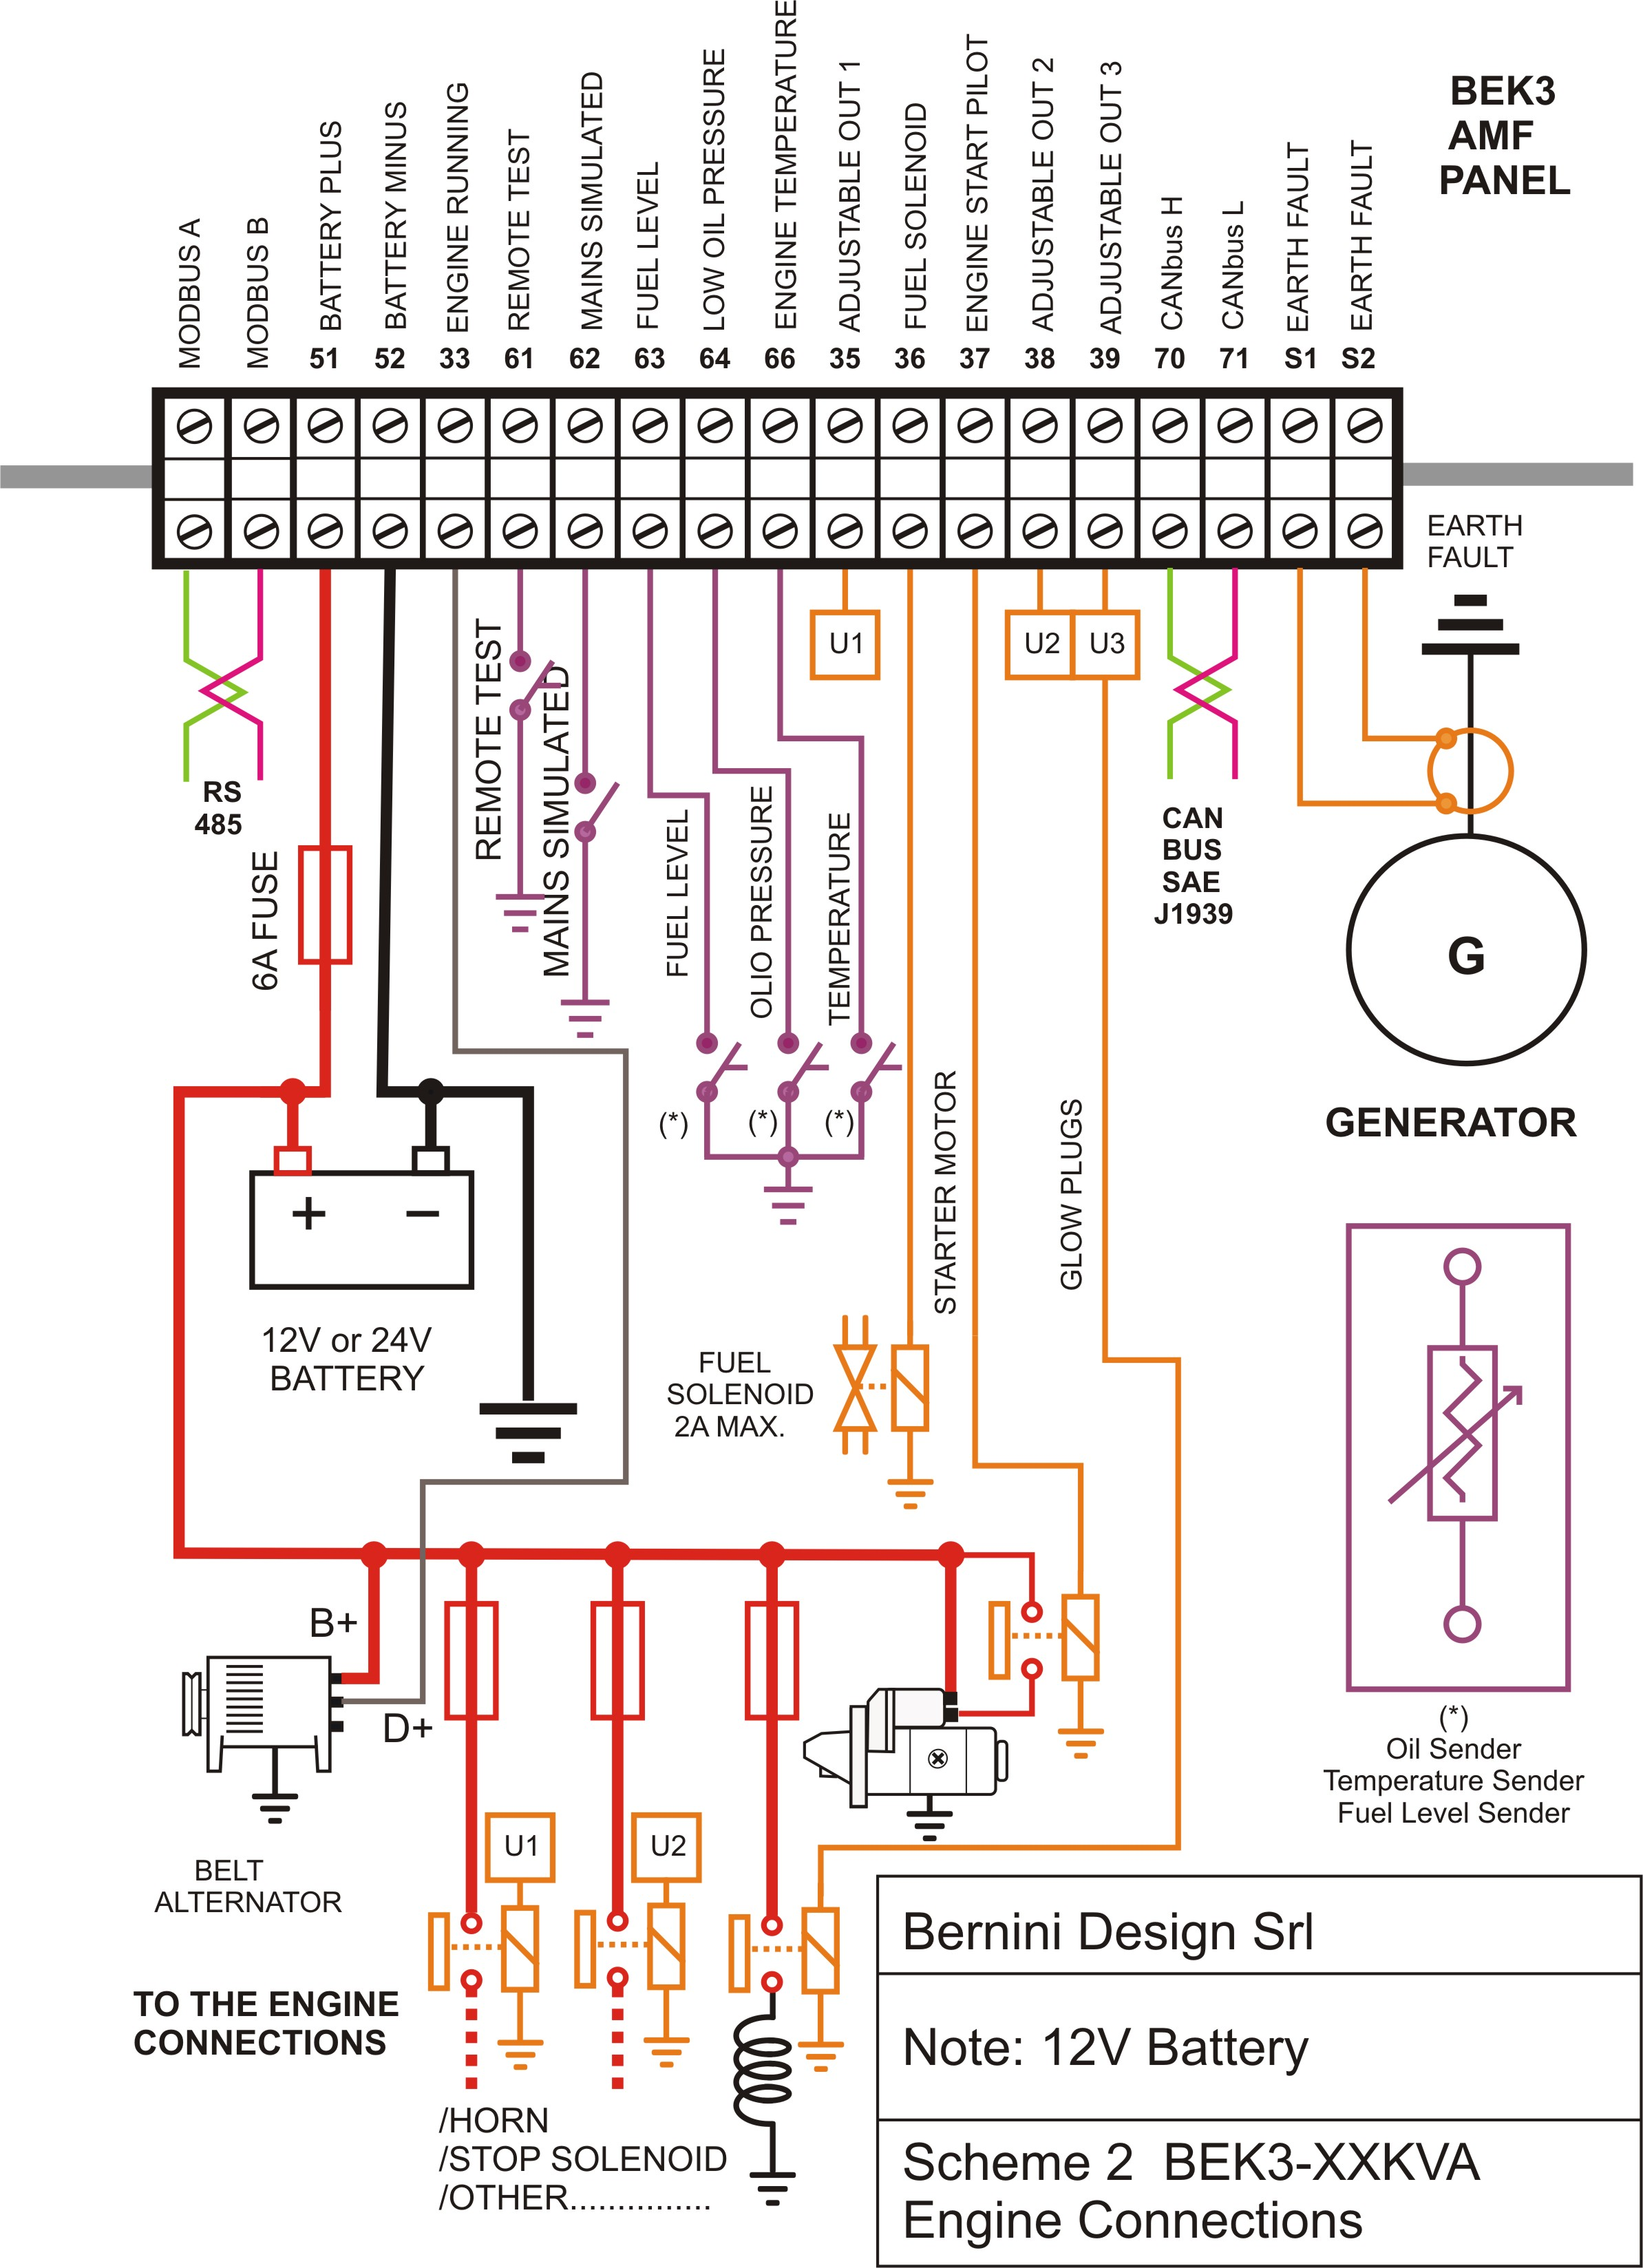 AMF Control Panel Circuit Diagram PDF Engine Connections dse704 wiring diagram gmc fuse box diagrams \u2022 wiring diagrams j basic electrical wiring pdf at eliteediting.co